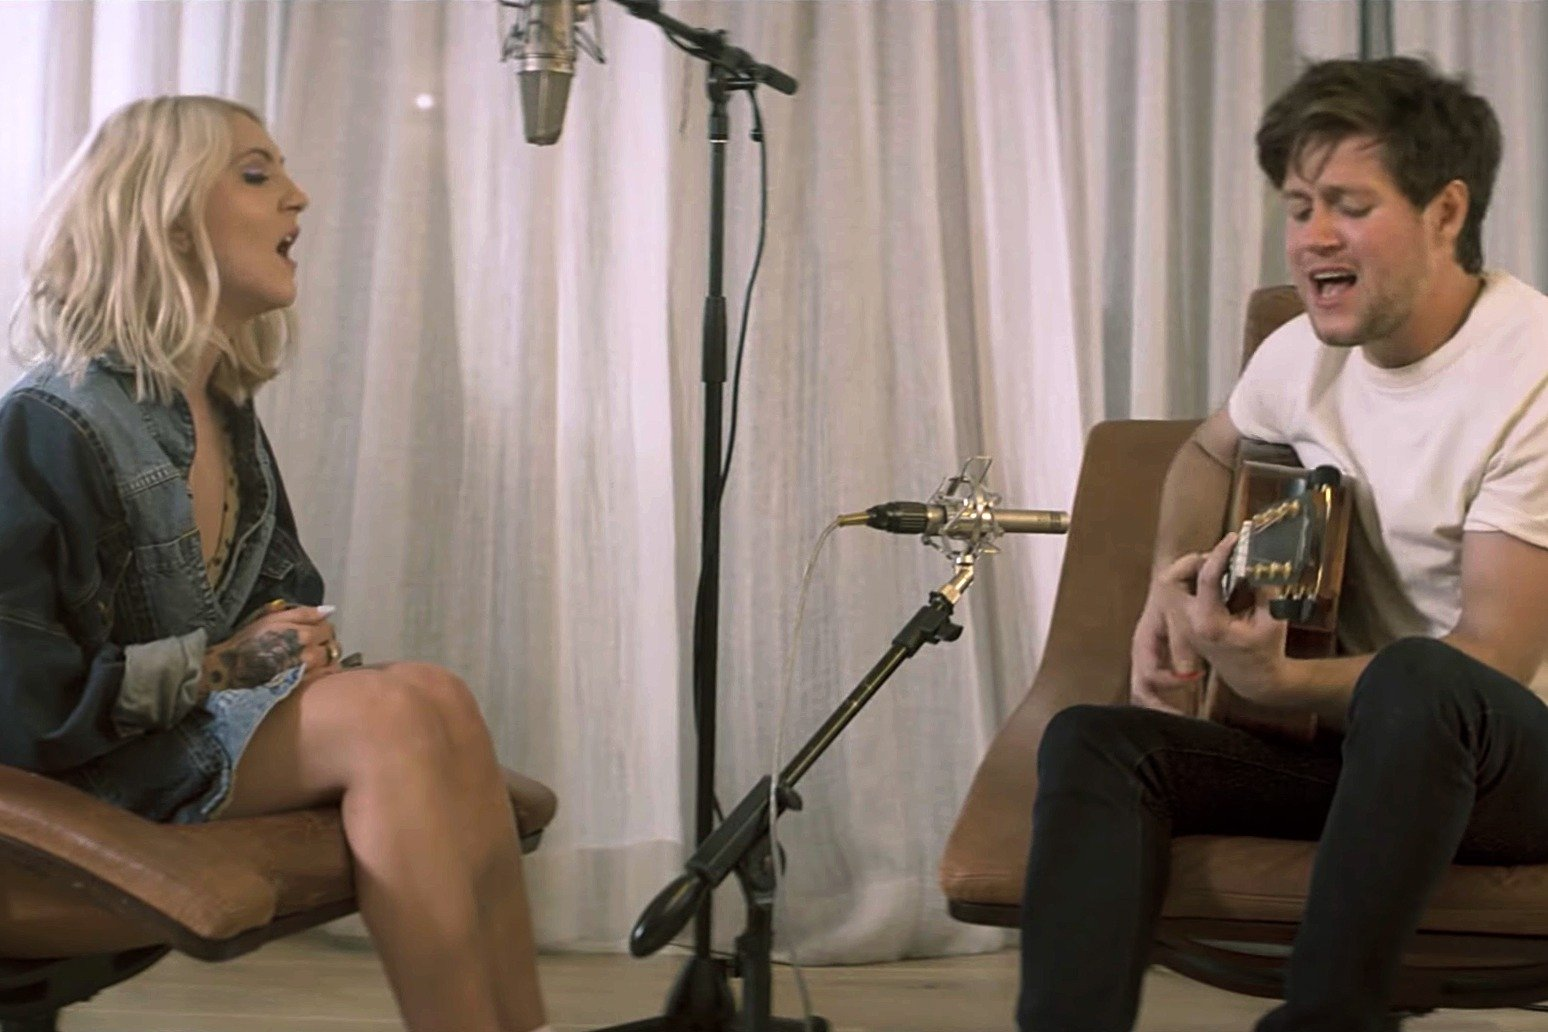 Niall Horan Look Alike Porn julia michaels and niall horan's acoustic 'what a time